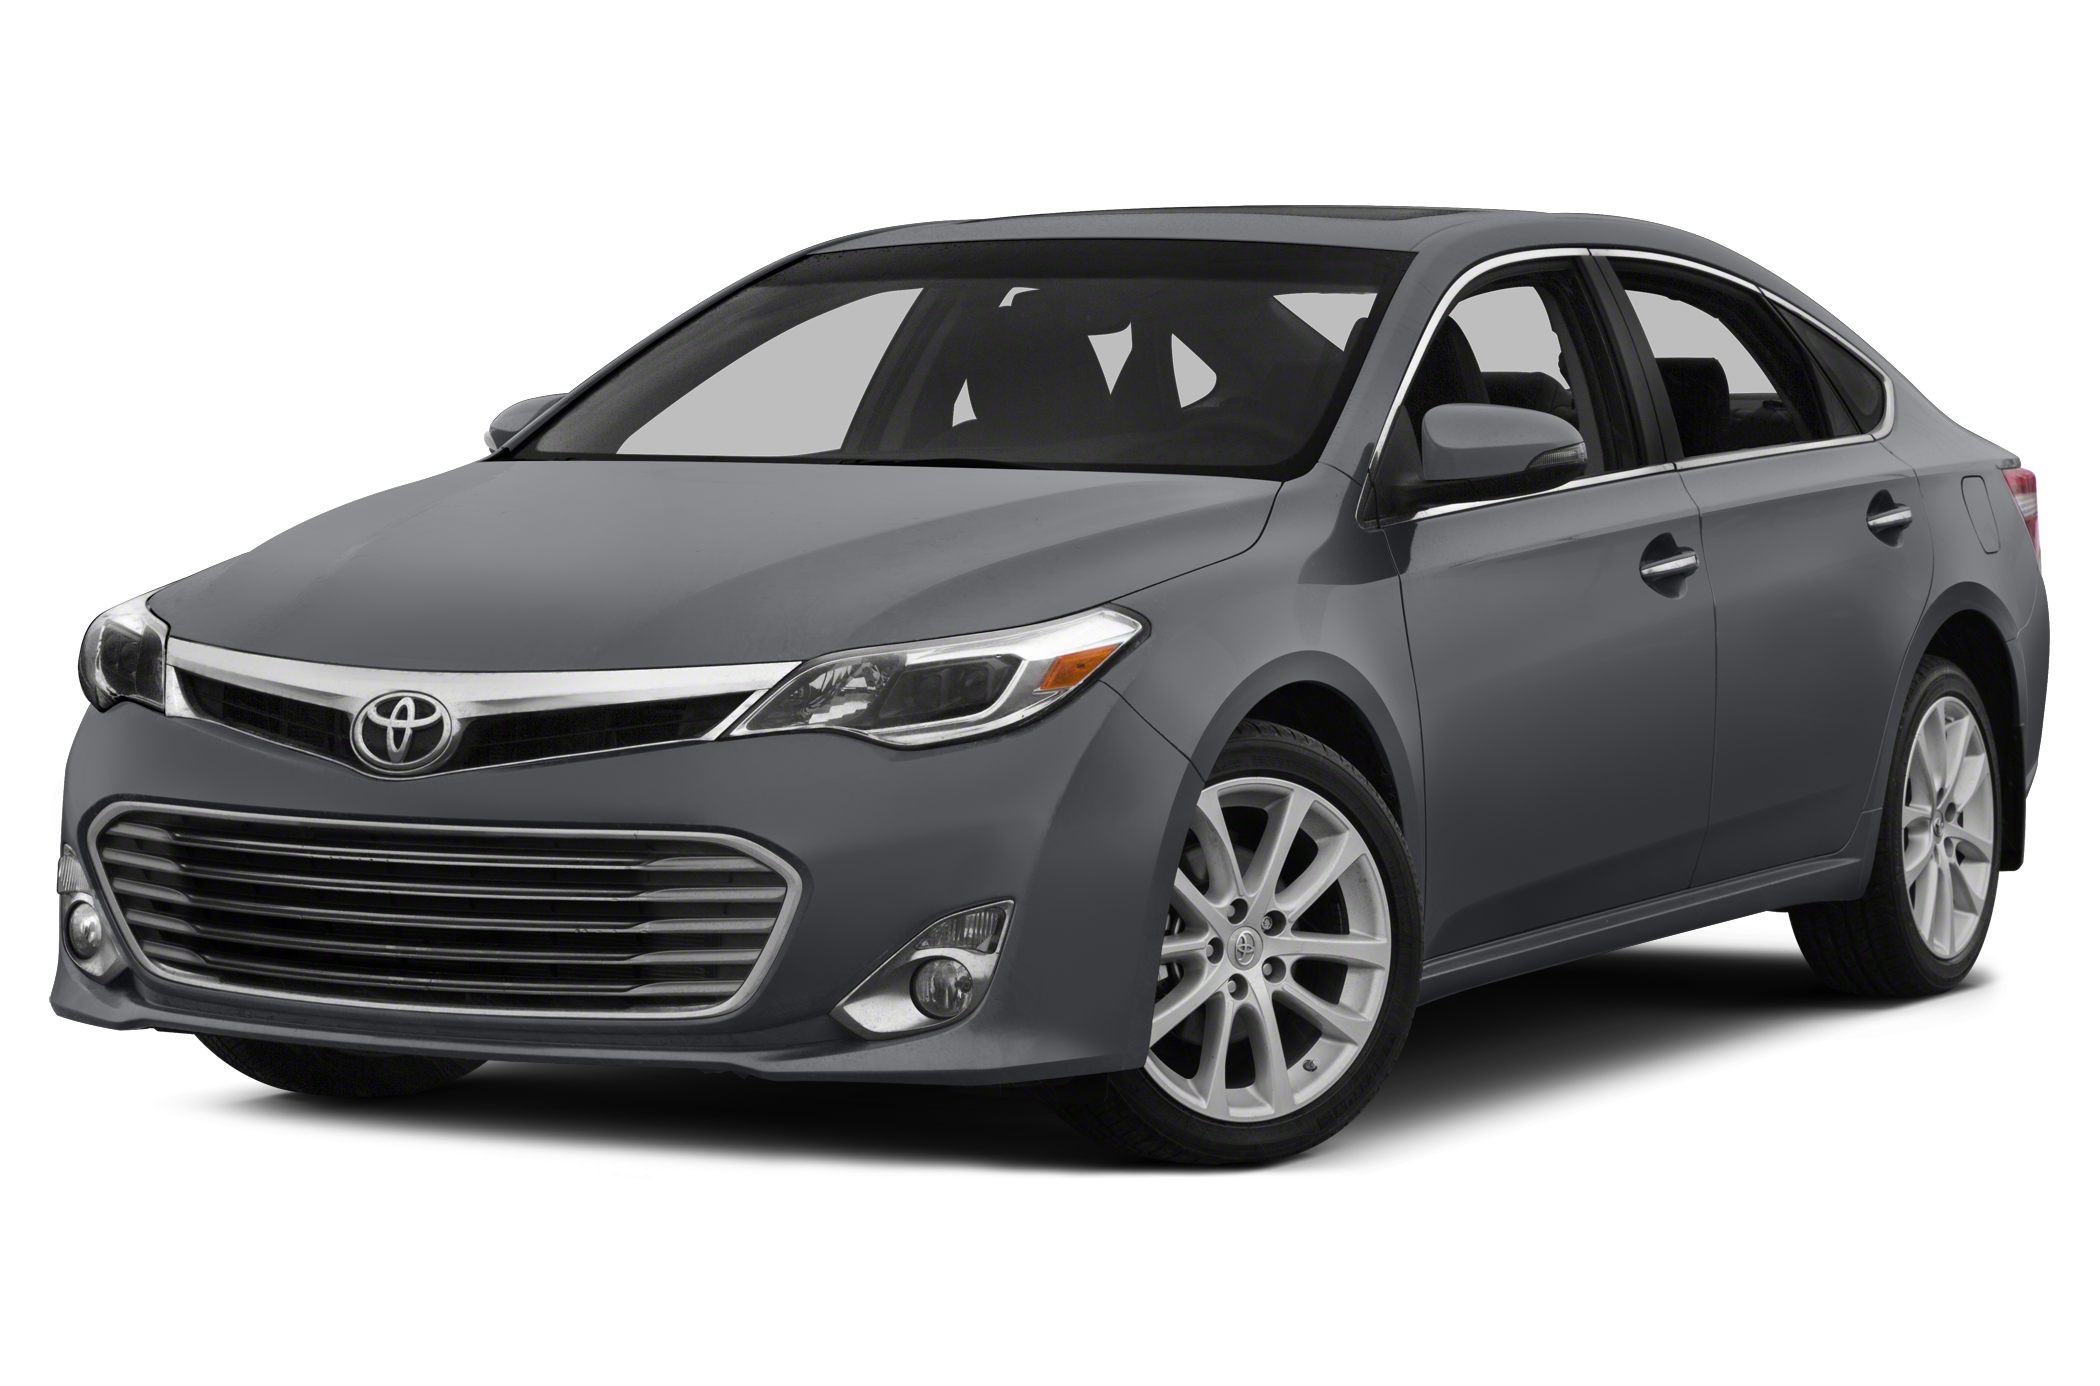 2015 Toyota Avalon Limited Sedan for sale in New London for $41,783 with 0 miles.